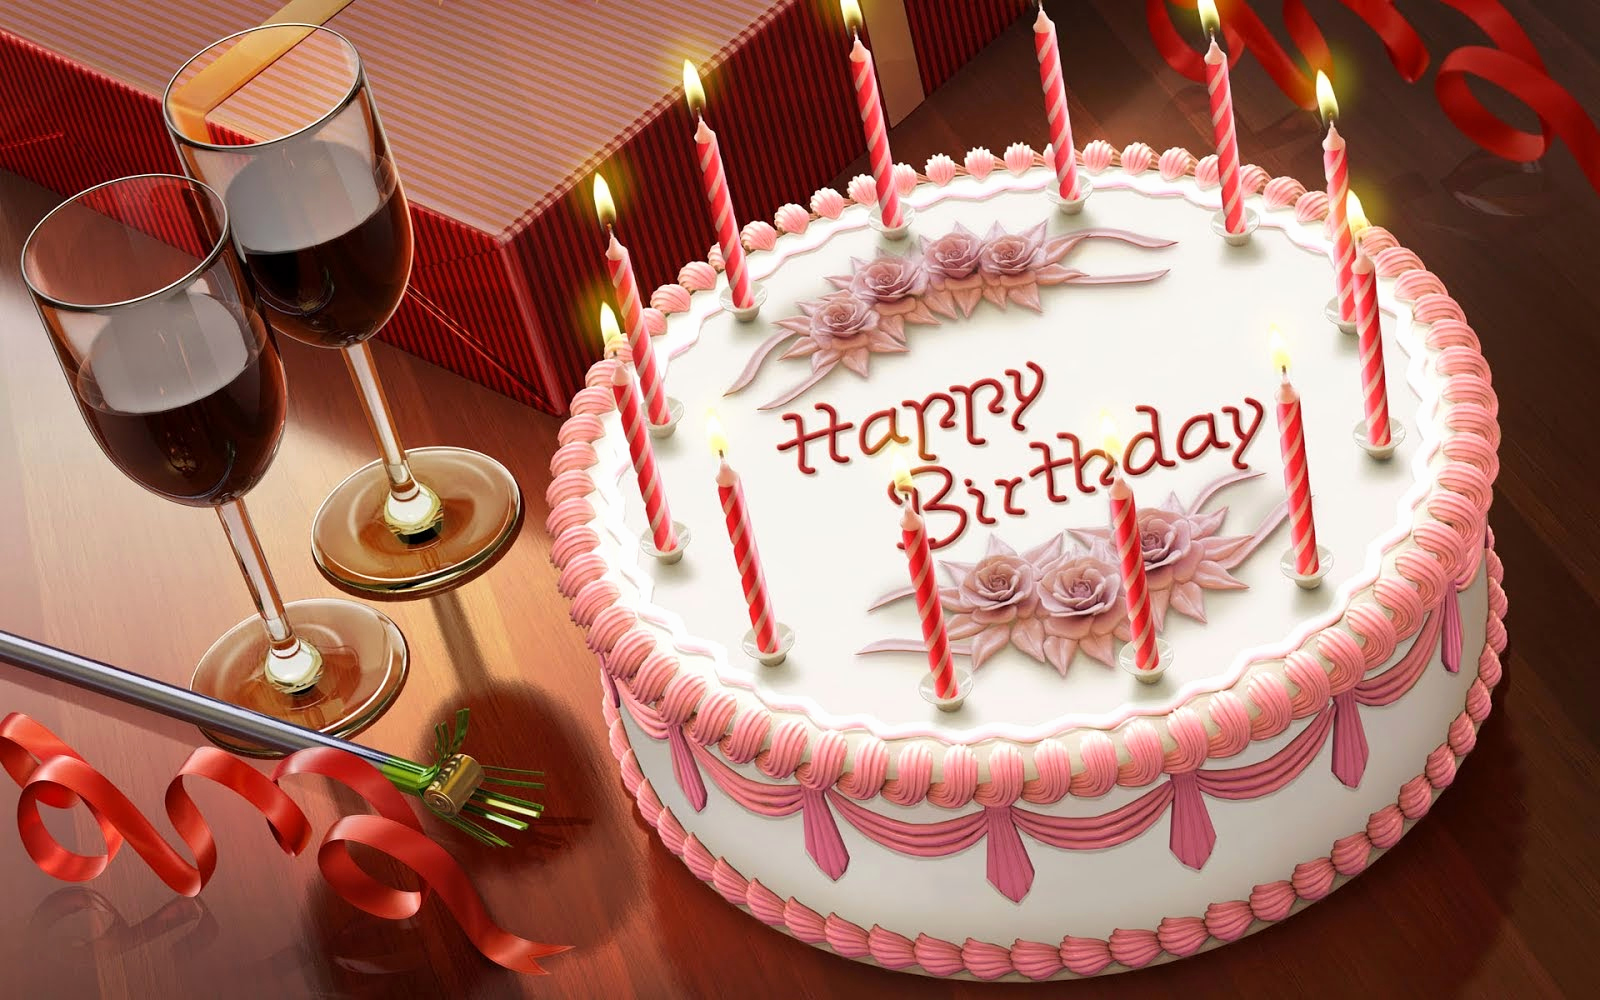 Happy Bday Wallpapers Free Best Of Happy Birthday Wallpapers